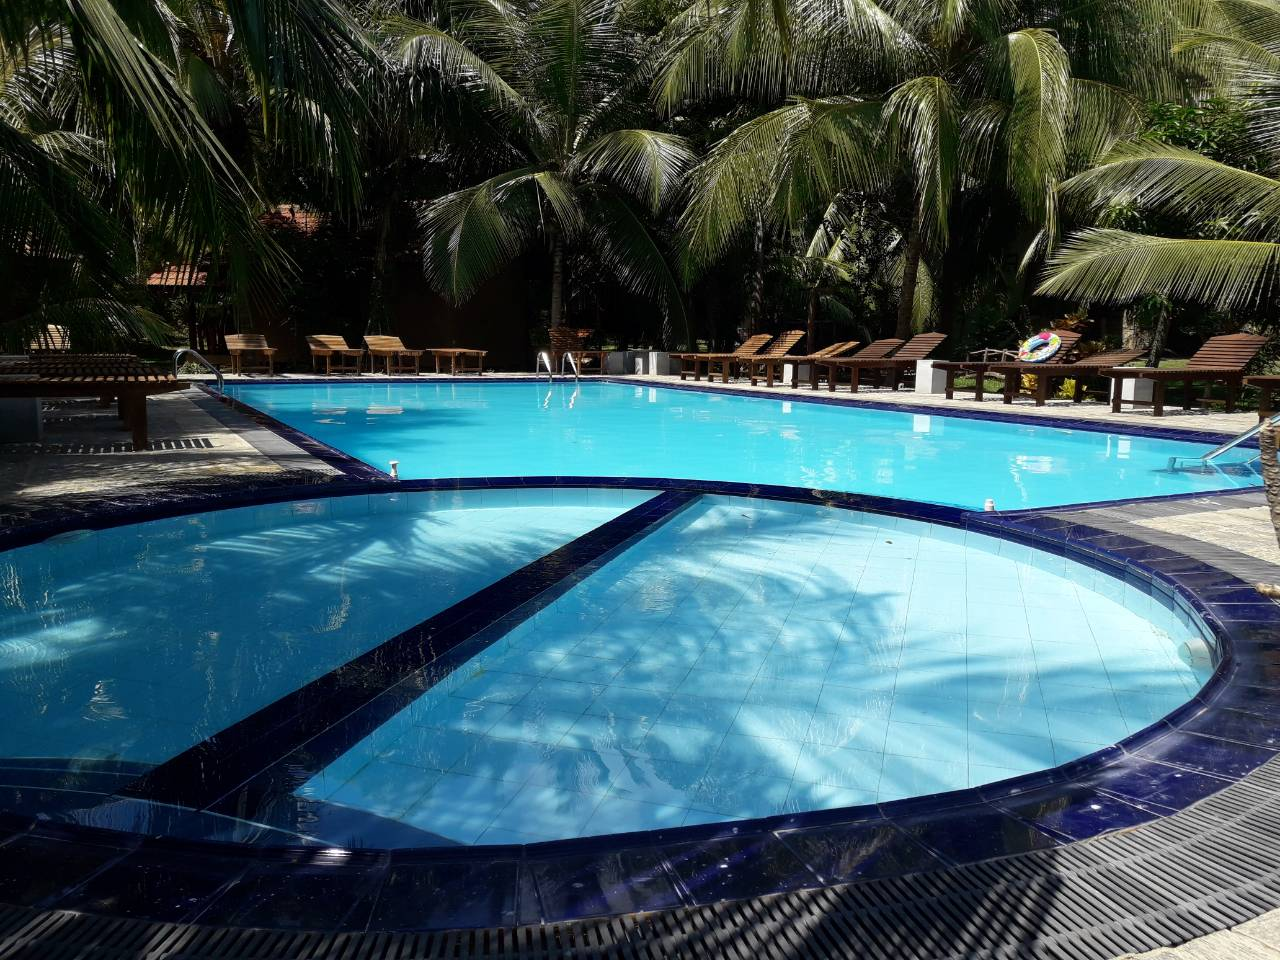 Euronix Water Management Panadura Swimming Pool Construction Jacuzzi Solutions In Panadura